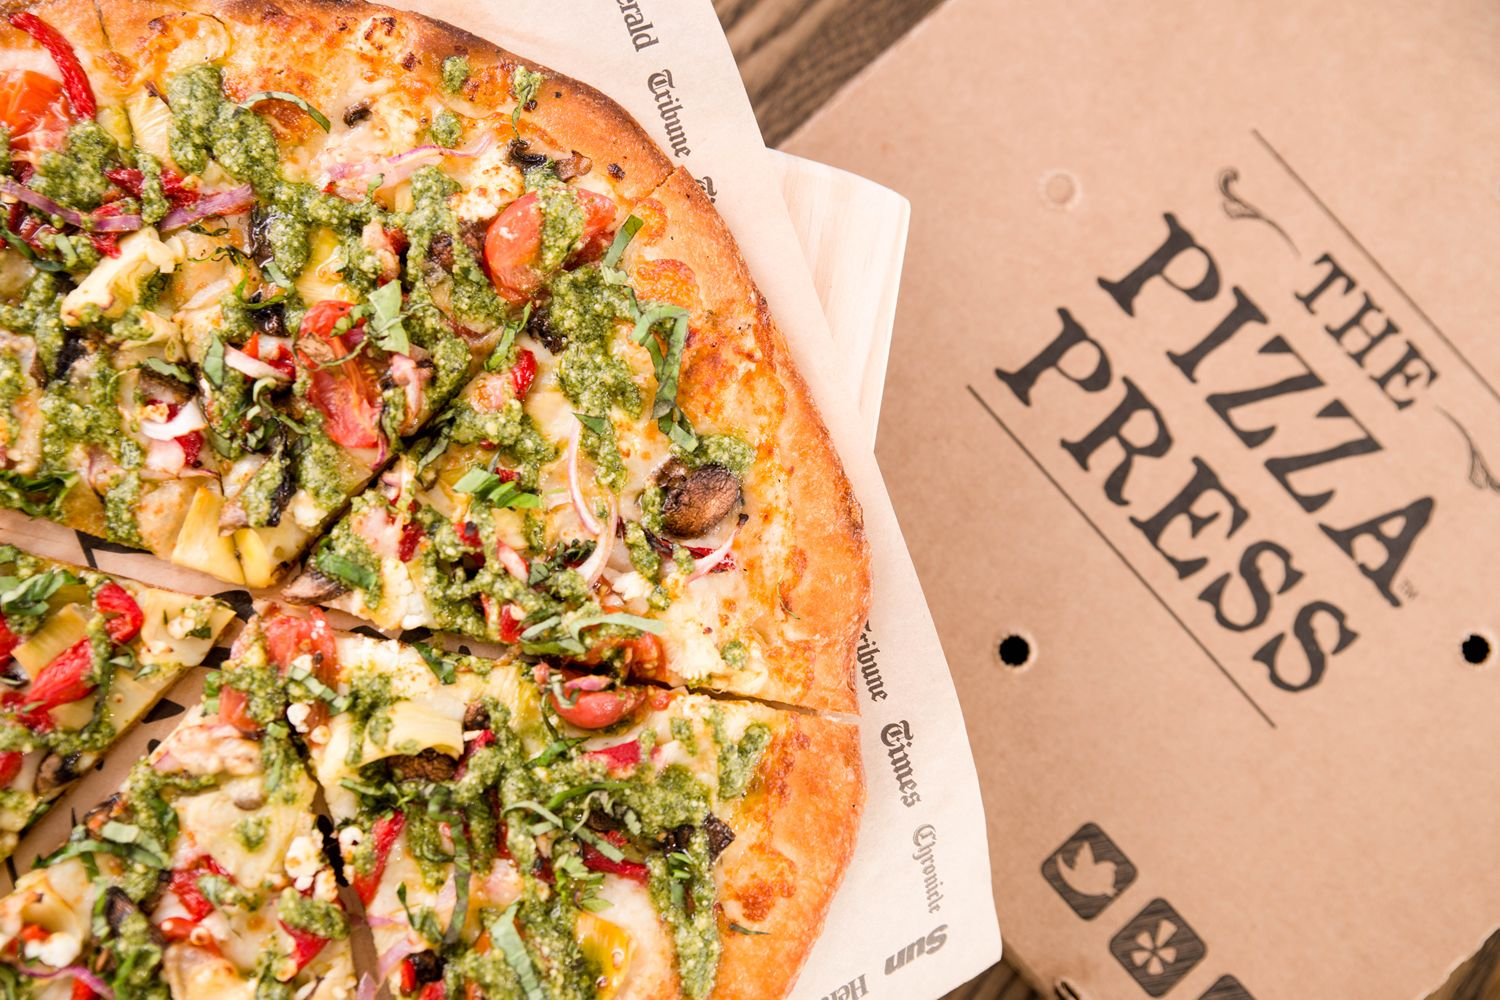 The Pizza Press Set To Give Away 1,000 Free Pizzas To Announce Their Grand Opening In Celebration, Florida